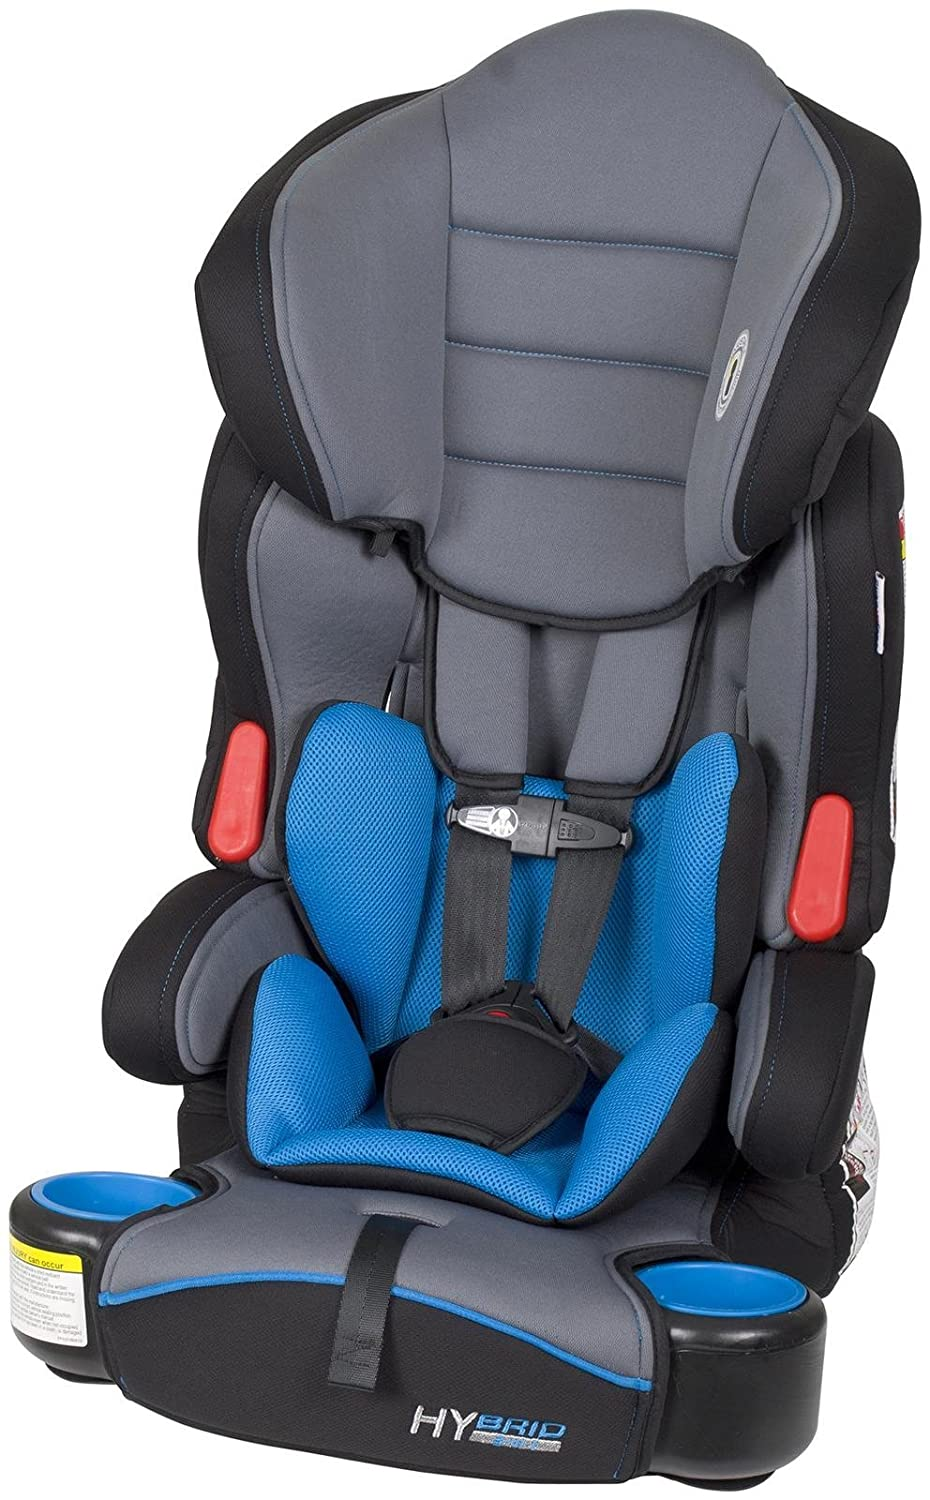 Baby Trend Hybrid Booster 3-In-1 Auto Seat, Ozone